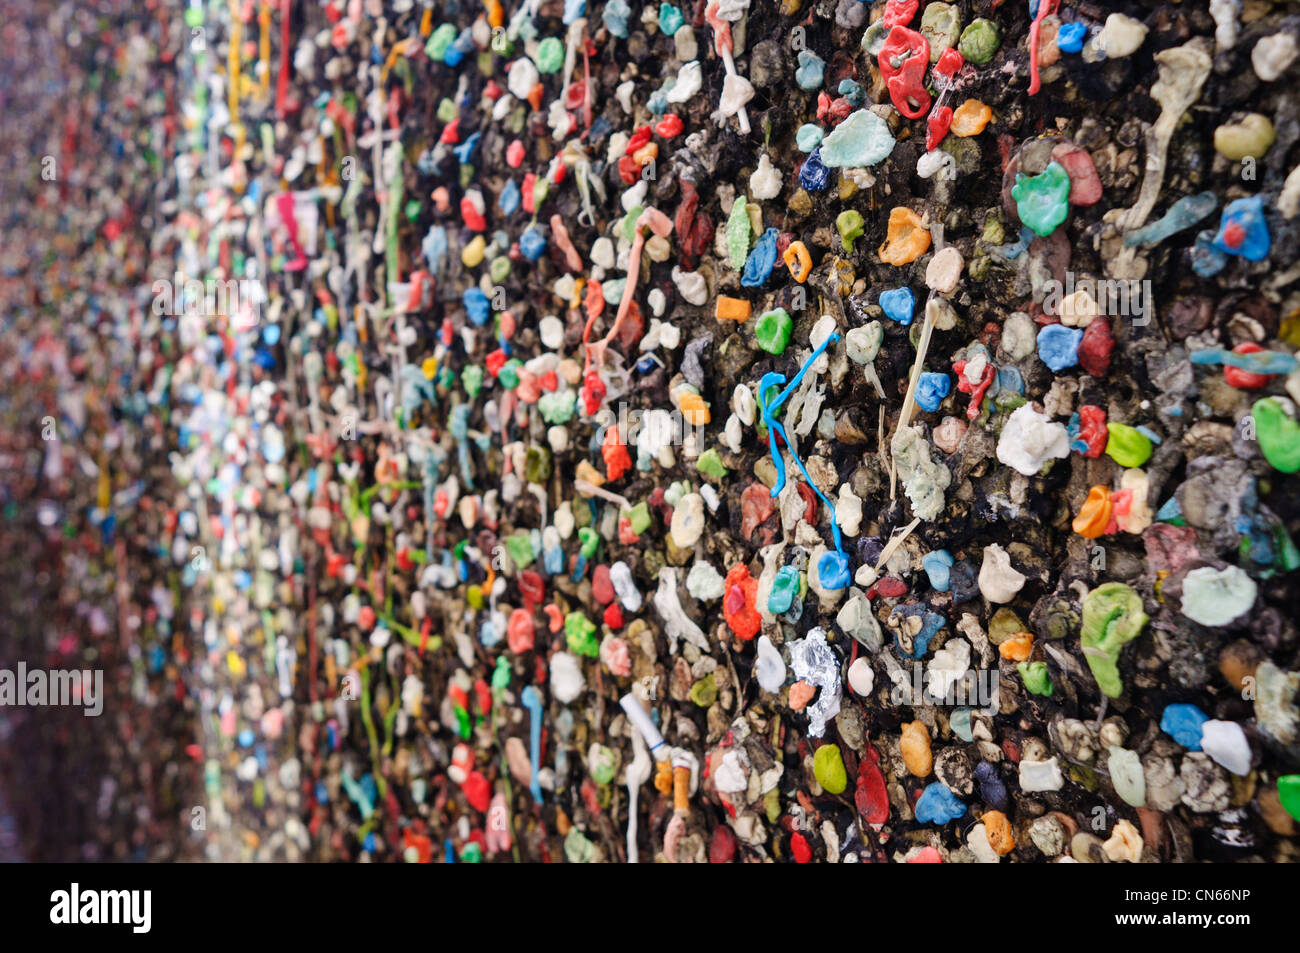 Un mur de Bubble Gum Alley à San Luis Obispo, CA. Le 1er août 2011. Photo Stock